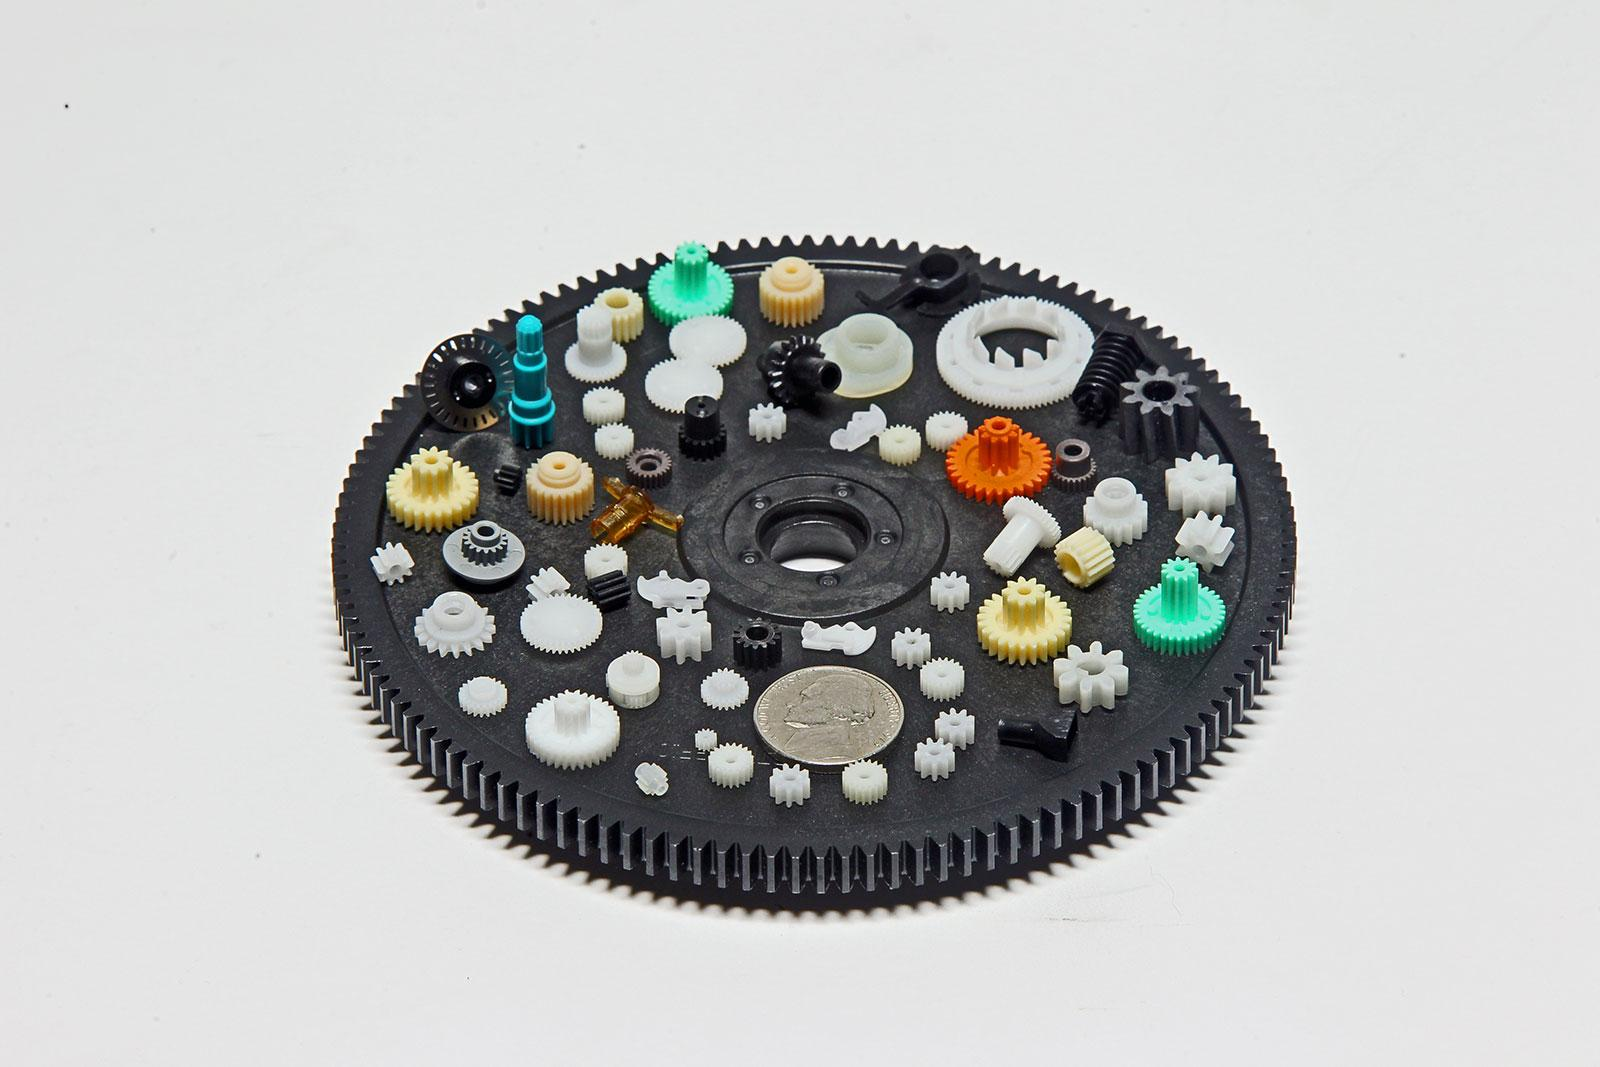 Minature plastic injection molded gears